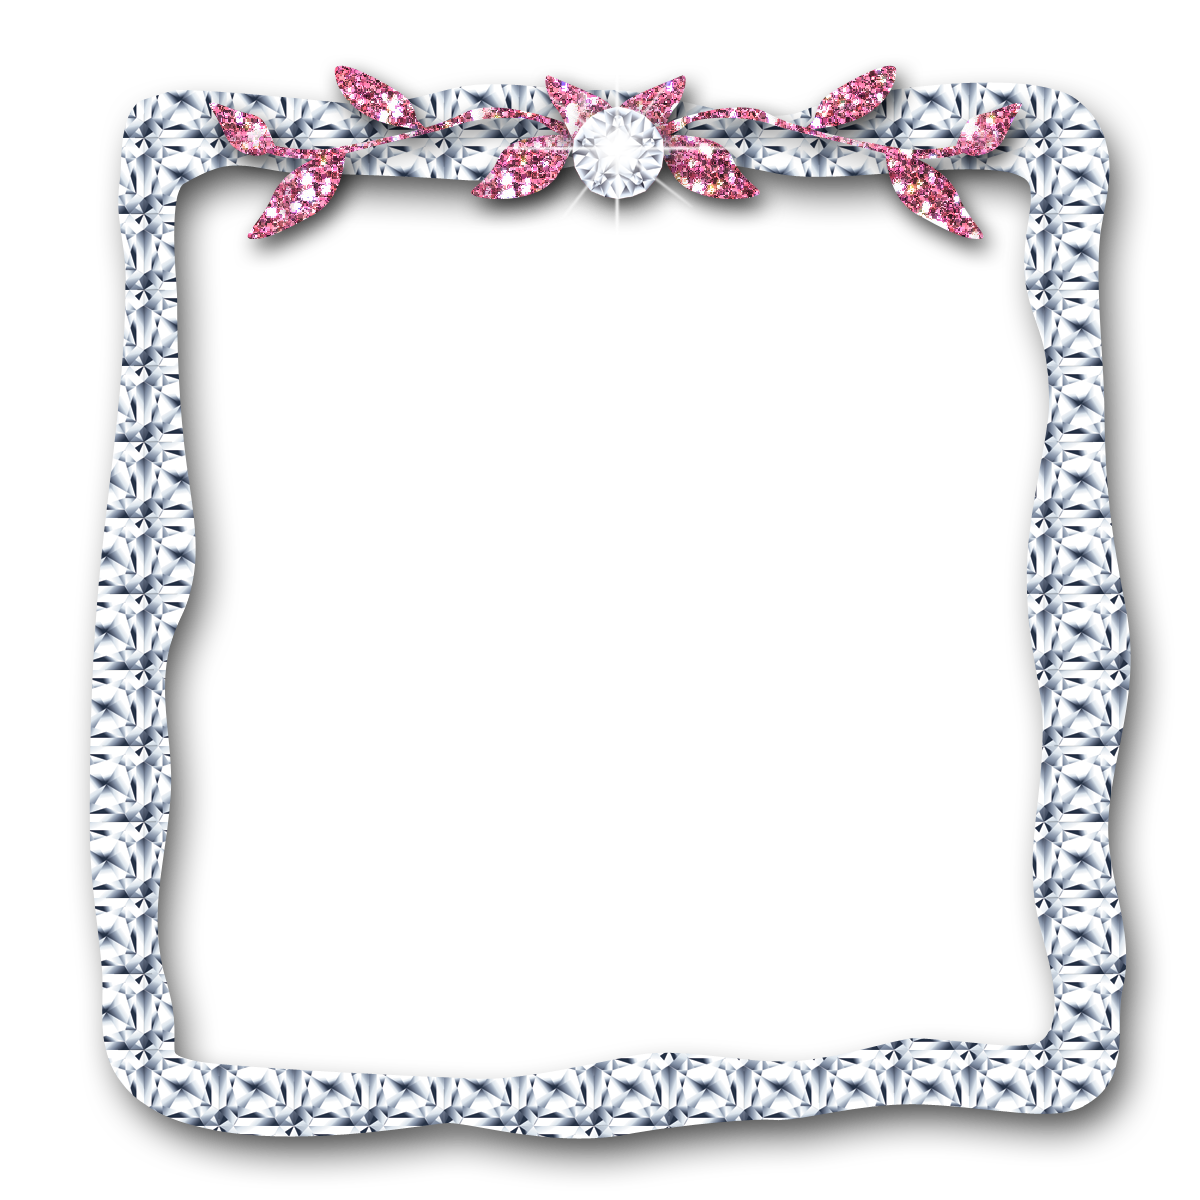 Jewelry clipart frame, Jewelry frame Transparent FREE for.